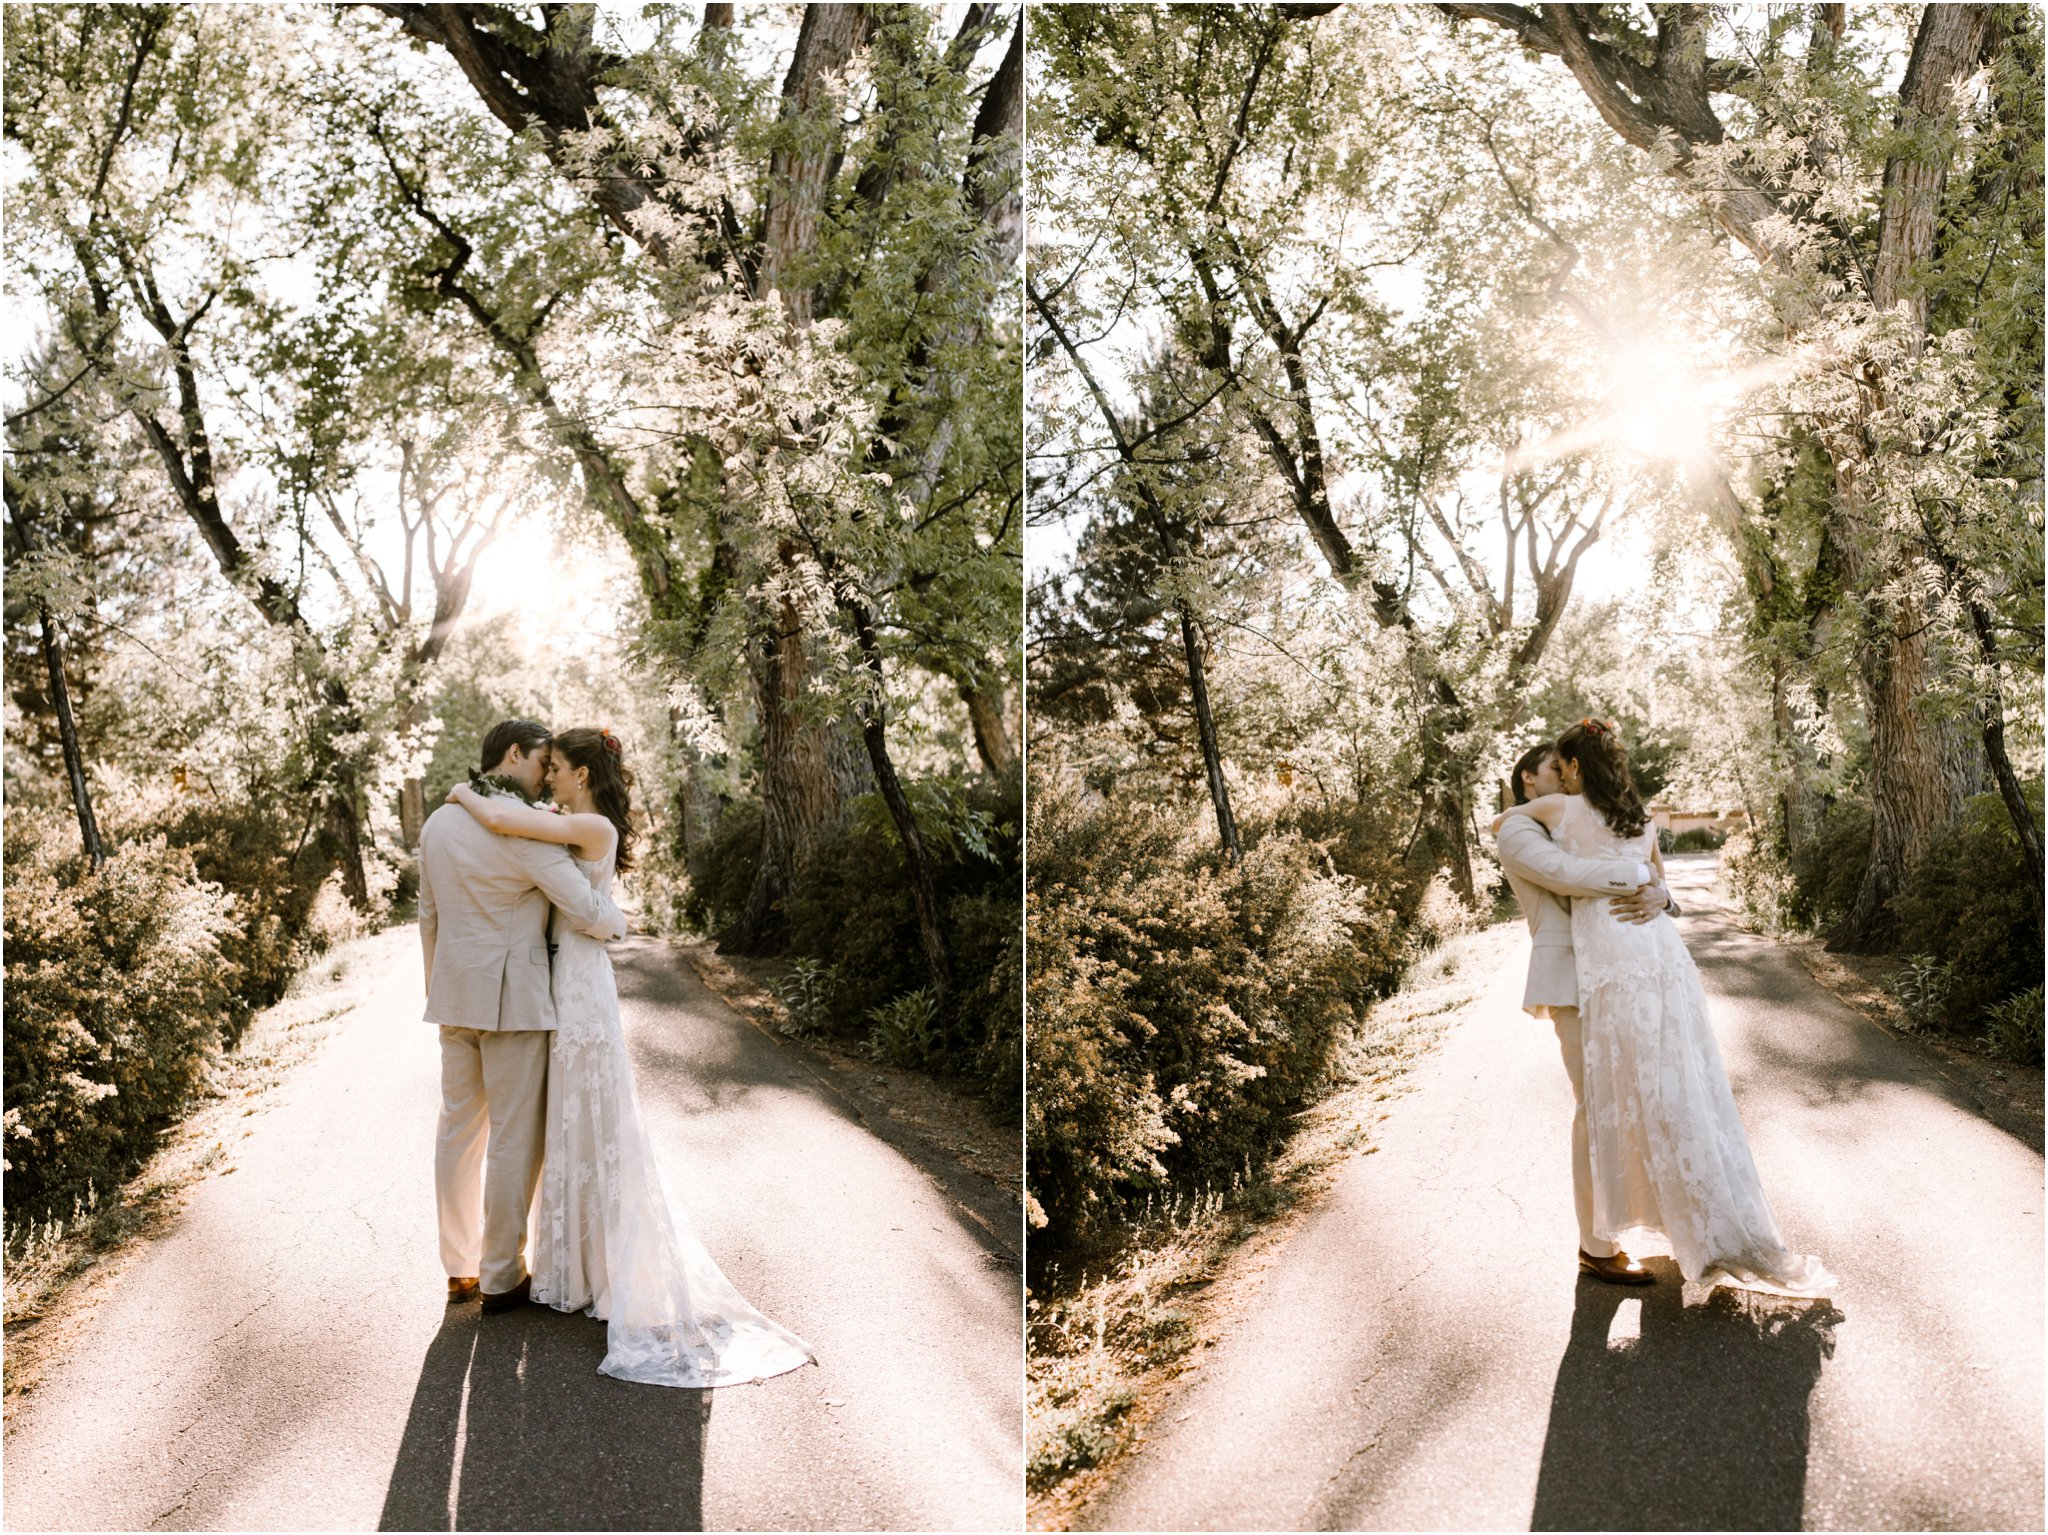 Los Poblanos Weddings Blue Rose Photography Studios Albuquerque Santa Fe Wedding photographer